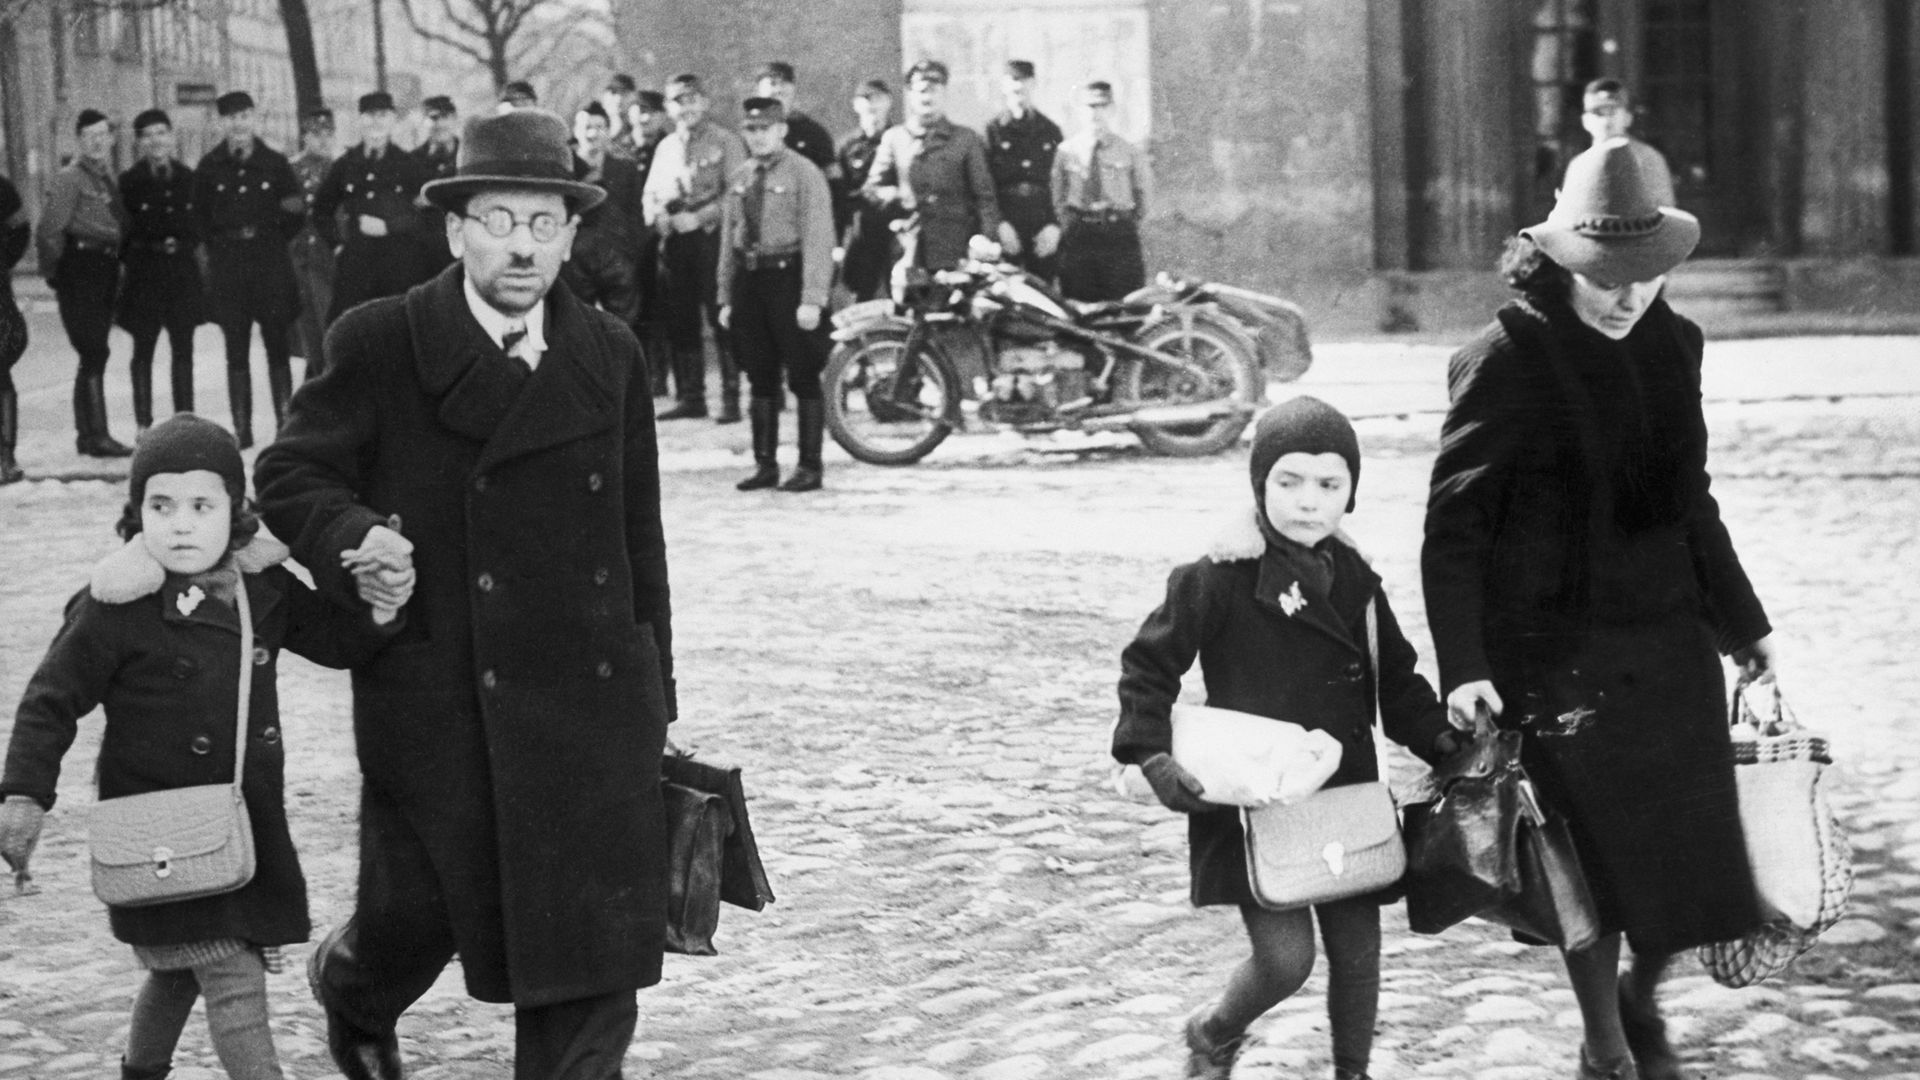 Uniformed Nazis watch a family of refugee Jews fleeing from Memel – now Klaipėda – after it was occupied by Germany in 1939, Adolf Hitler's last territorial acquisition before the war - Credit: Bettmann Archive